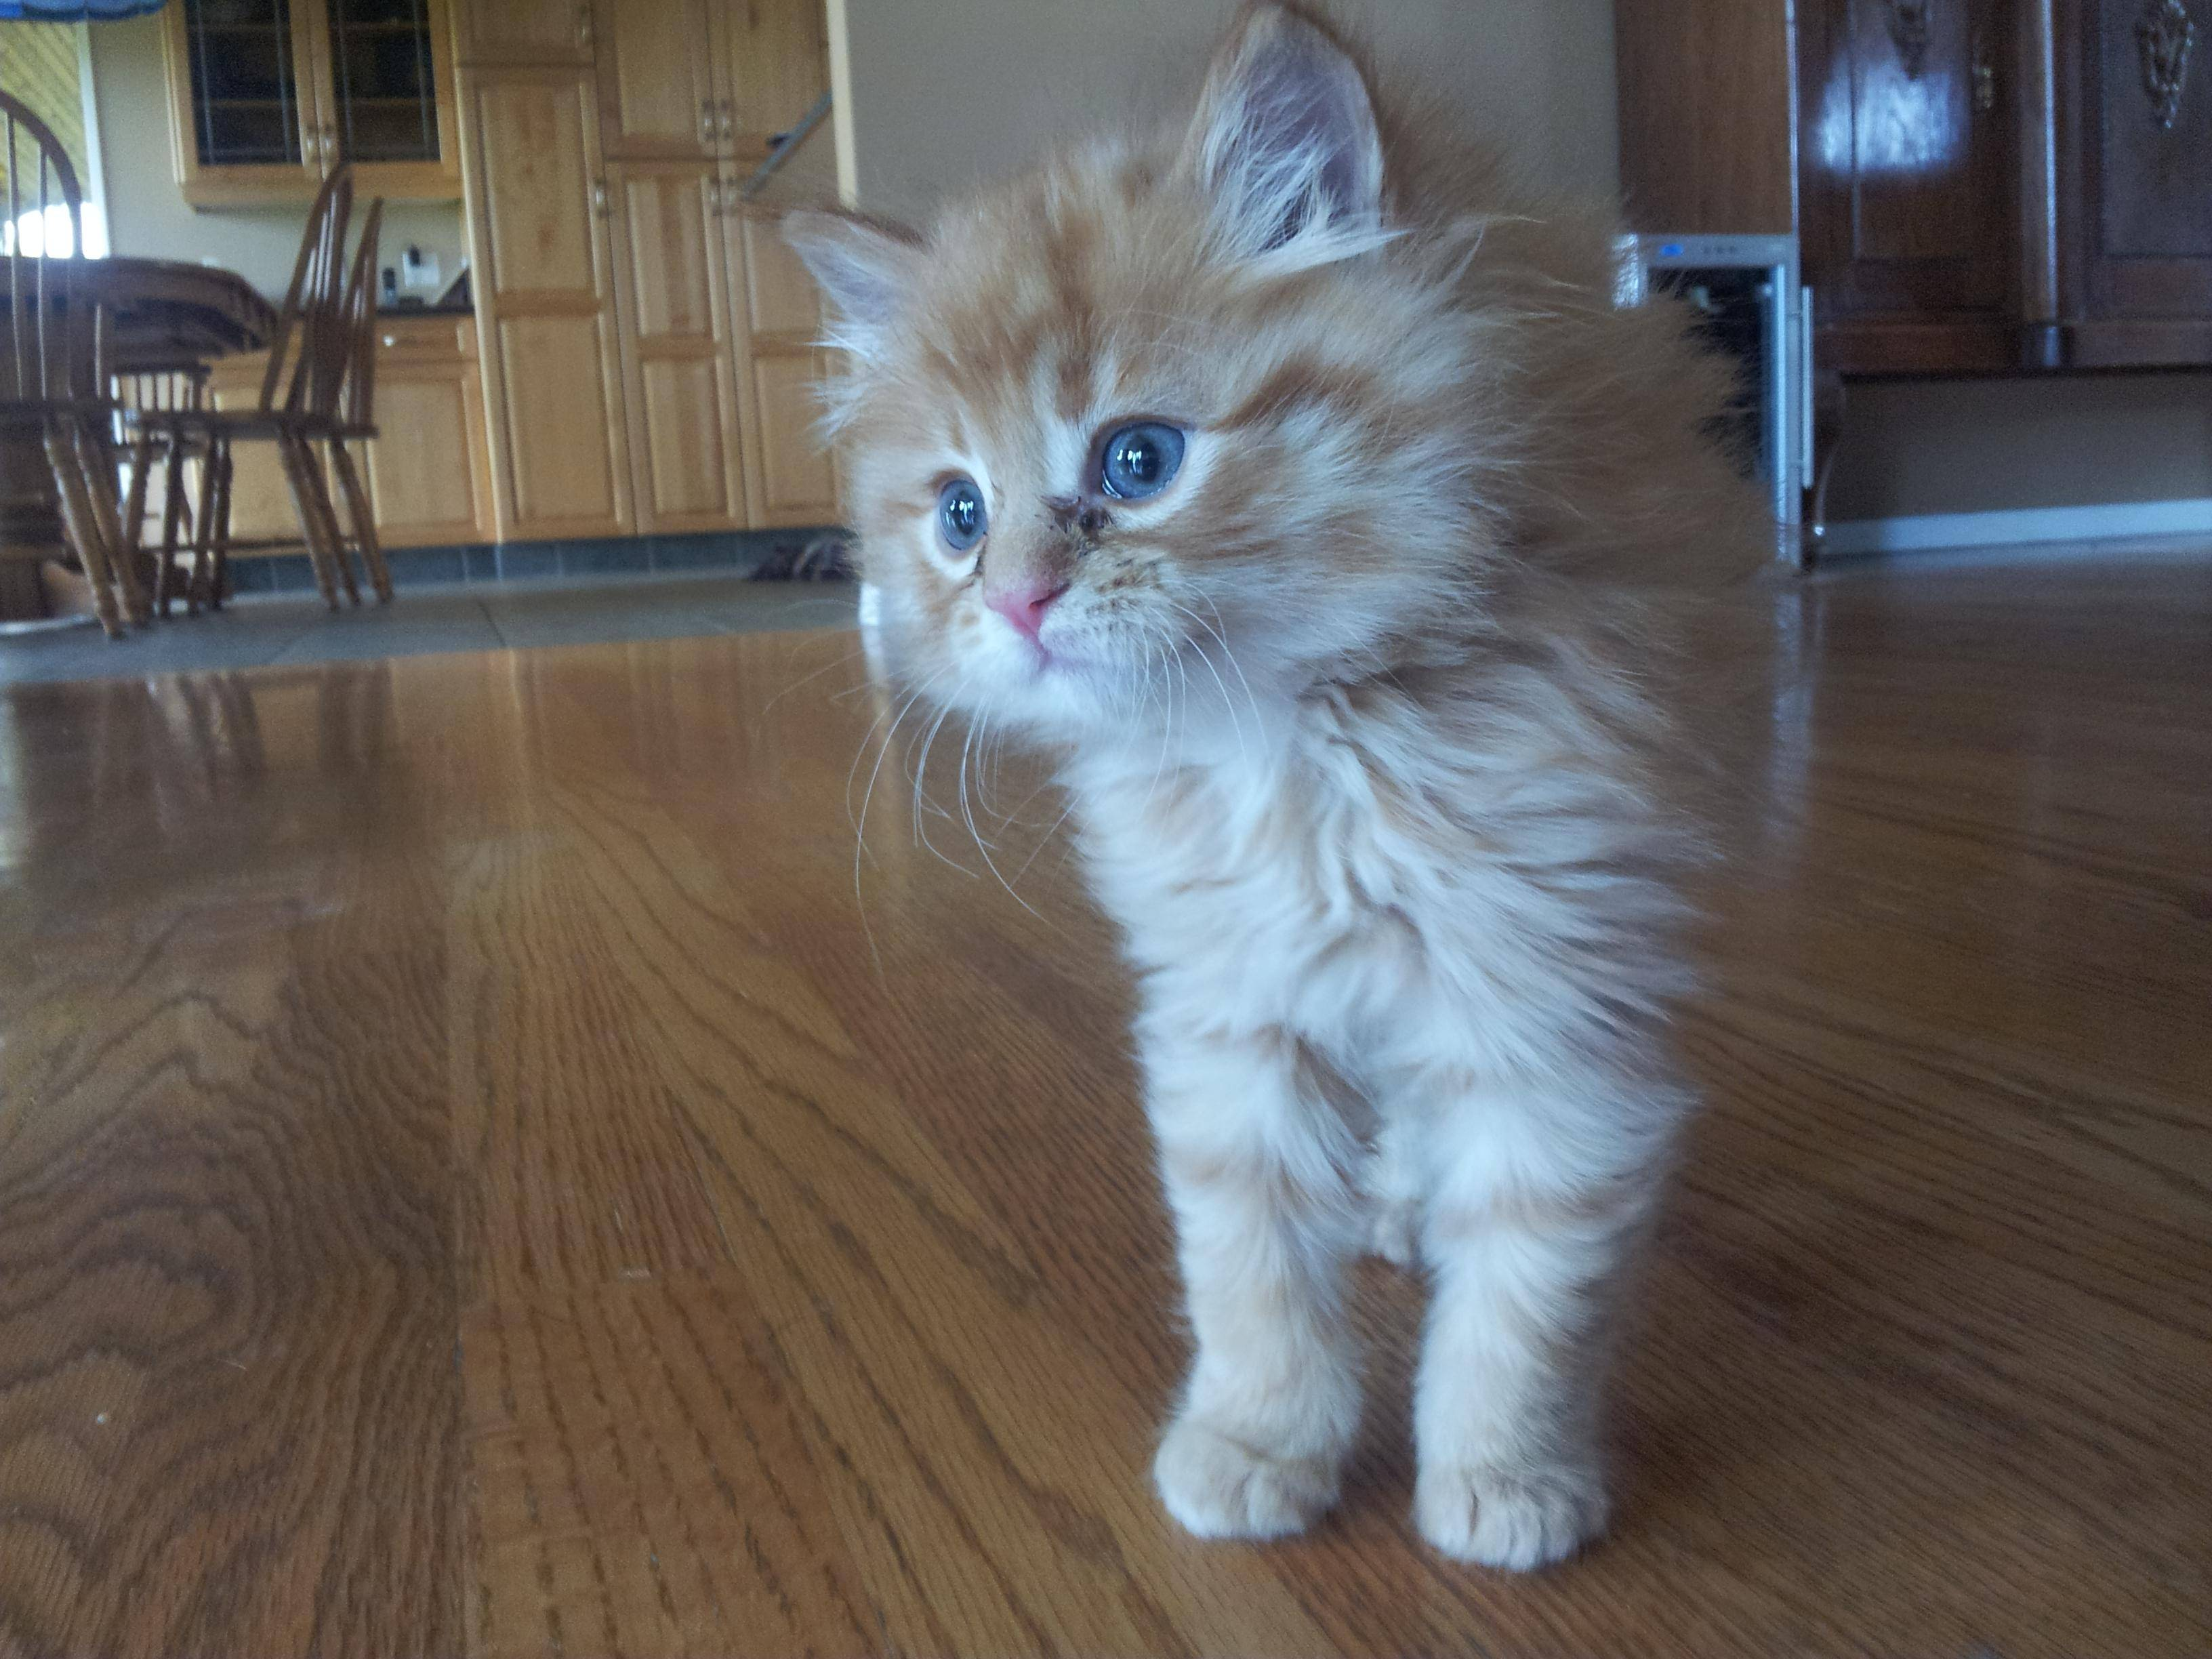 The Cutest Rescue Kitten in the World Grows Up to be the World's Most Handsome Cat